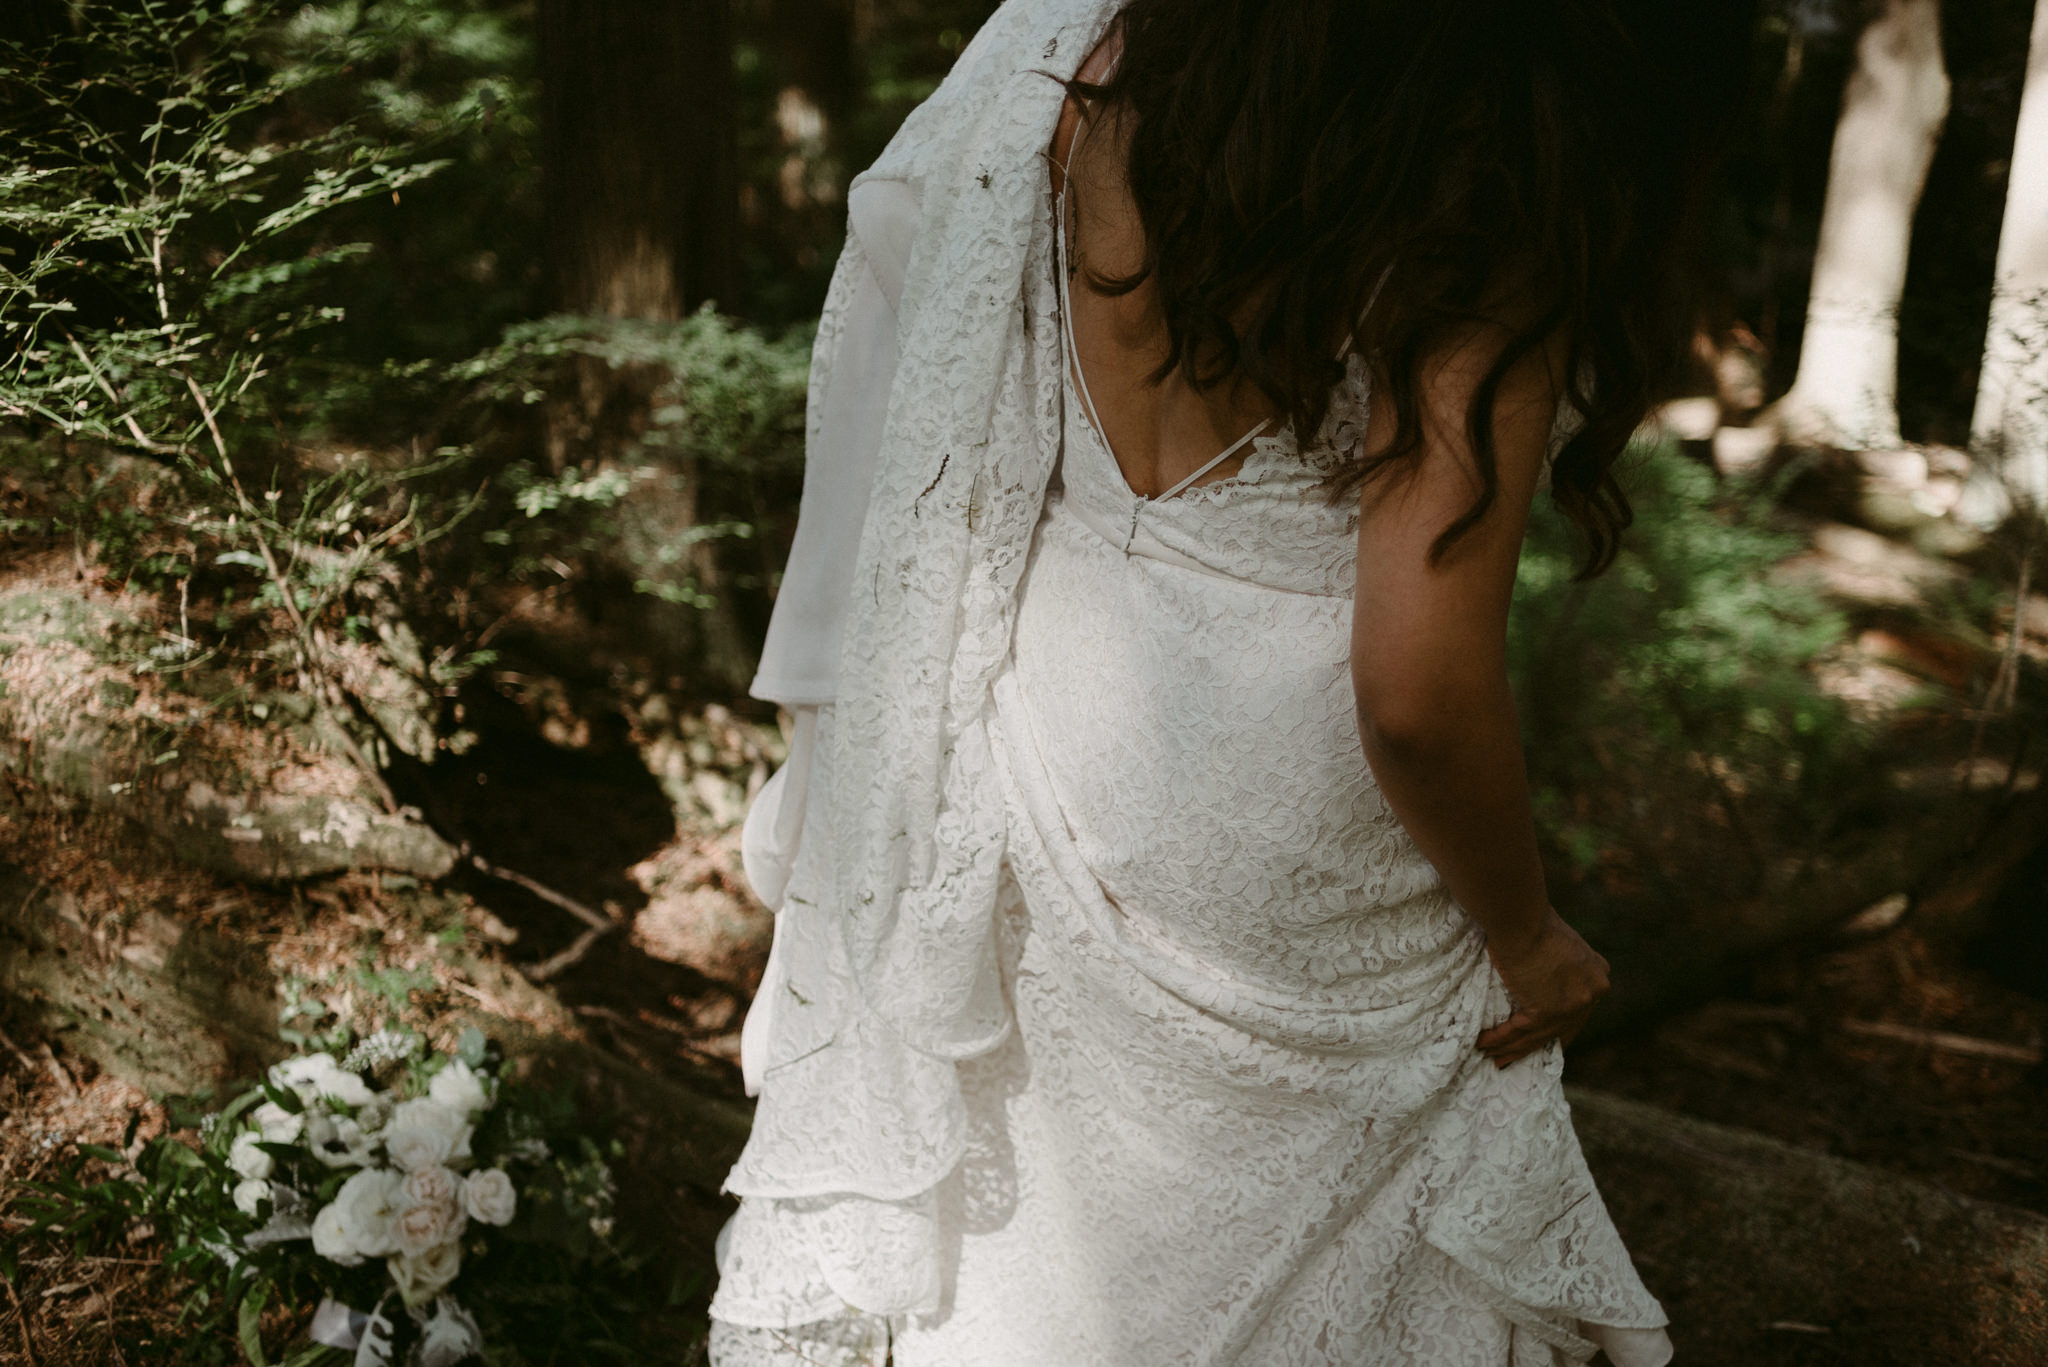 bride walking while holding dress in forest